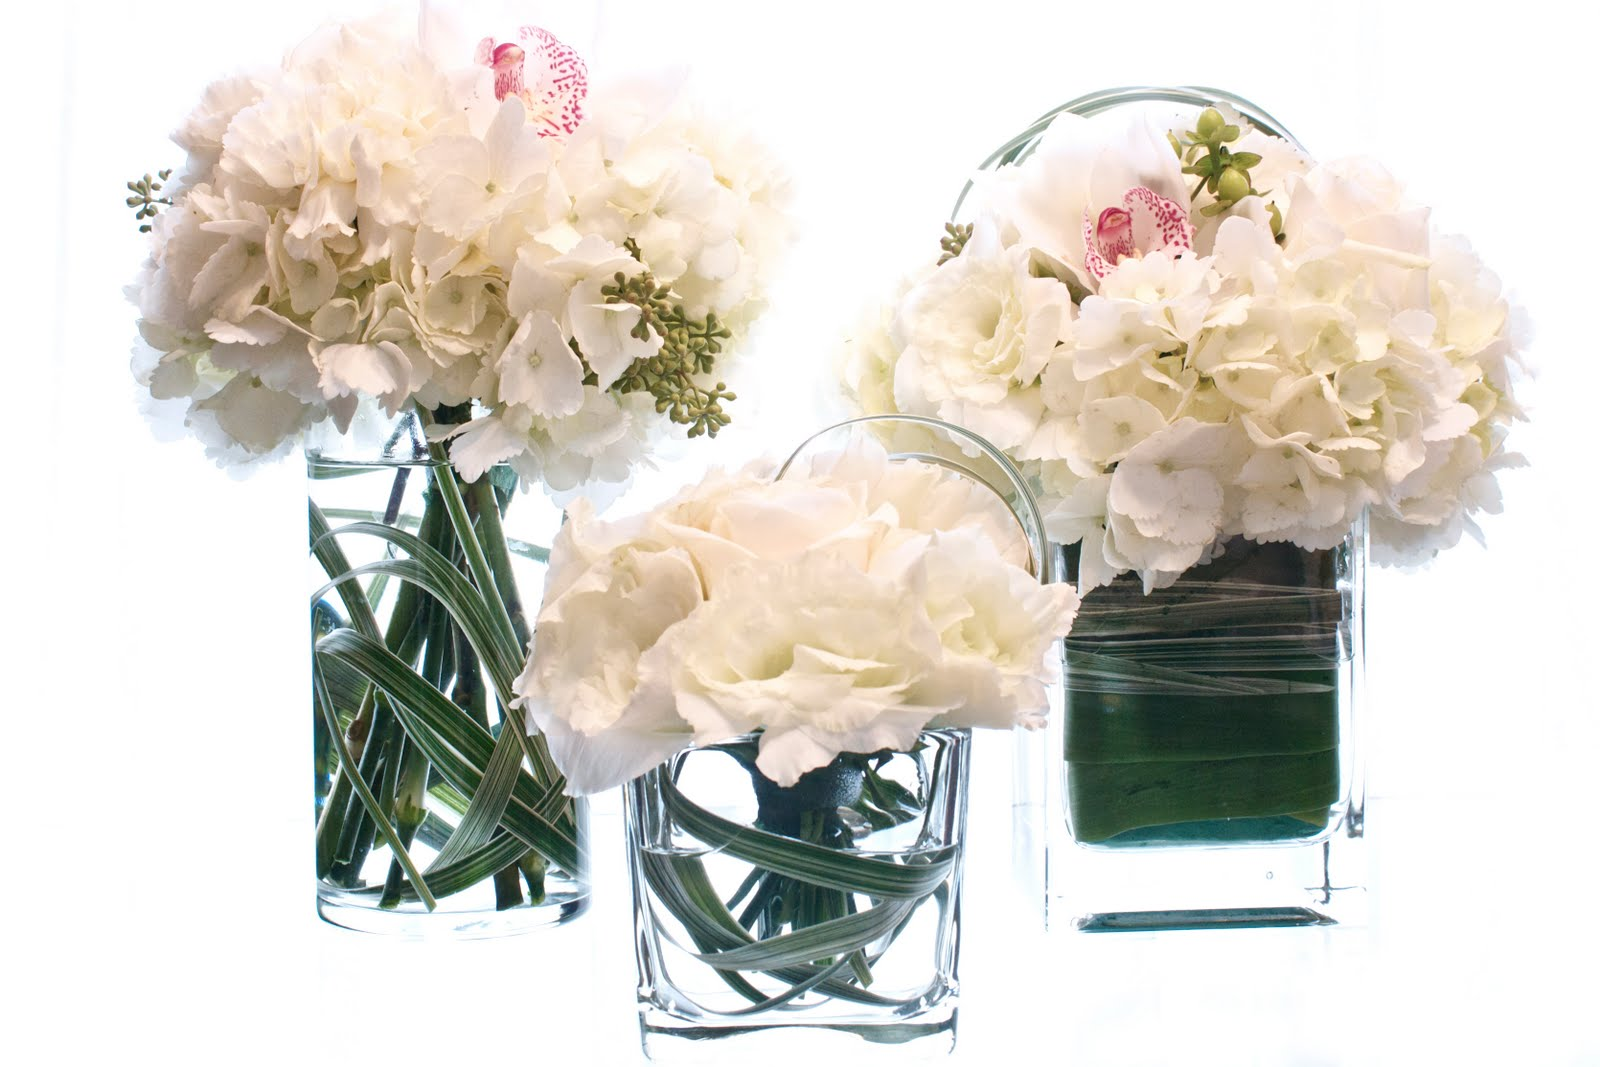 WHOLESALE GLASS VASES | WEDDING CYLINDER BLOCK GLASS VASE | GLASS